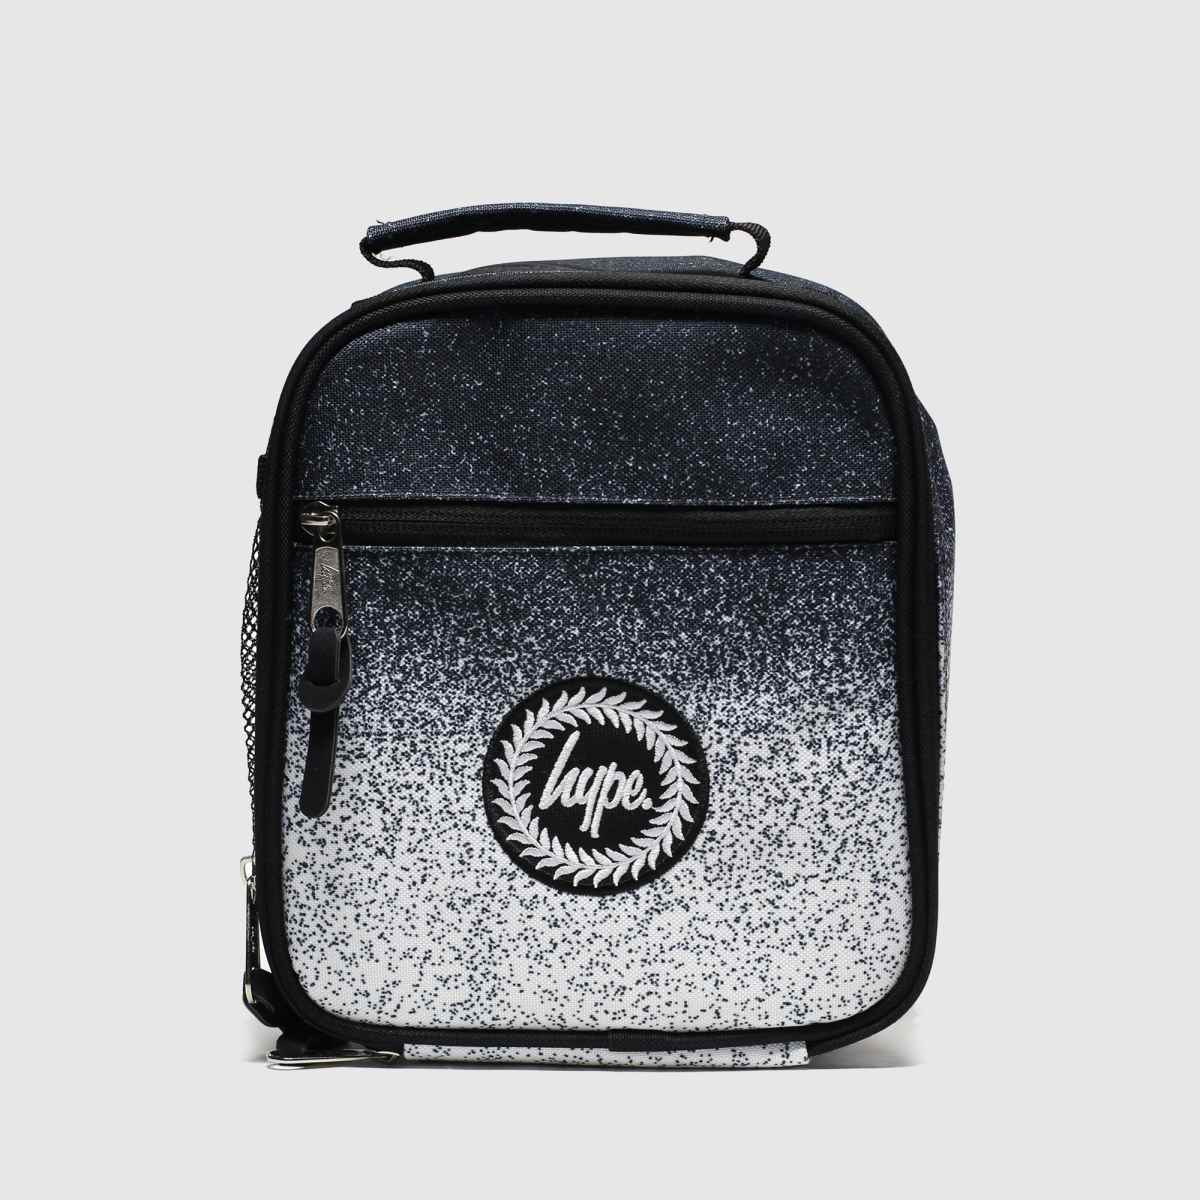 Accessories Hype Black & White Lunch Bag